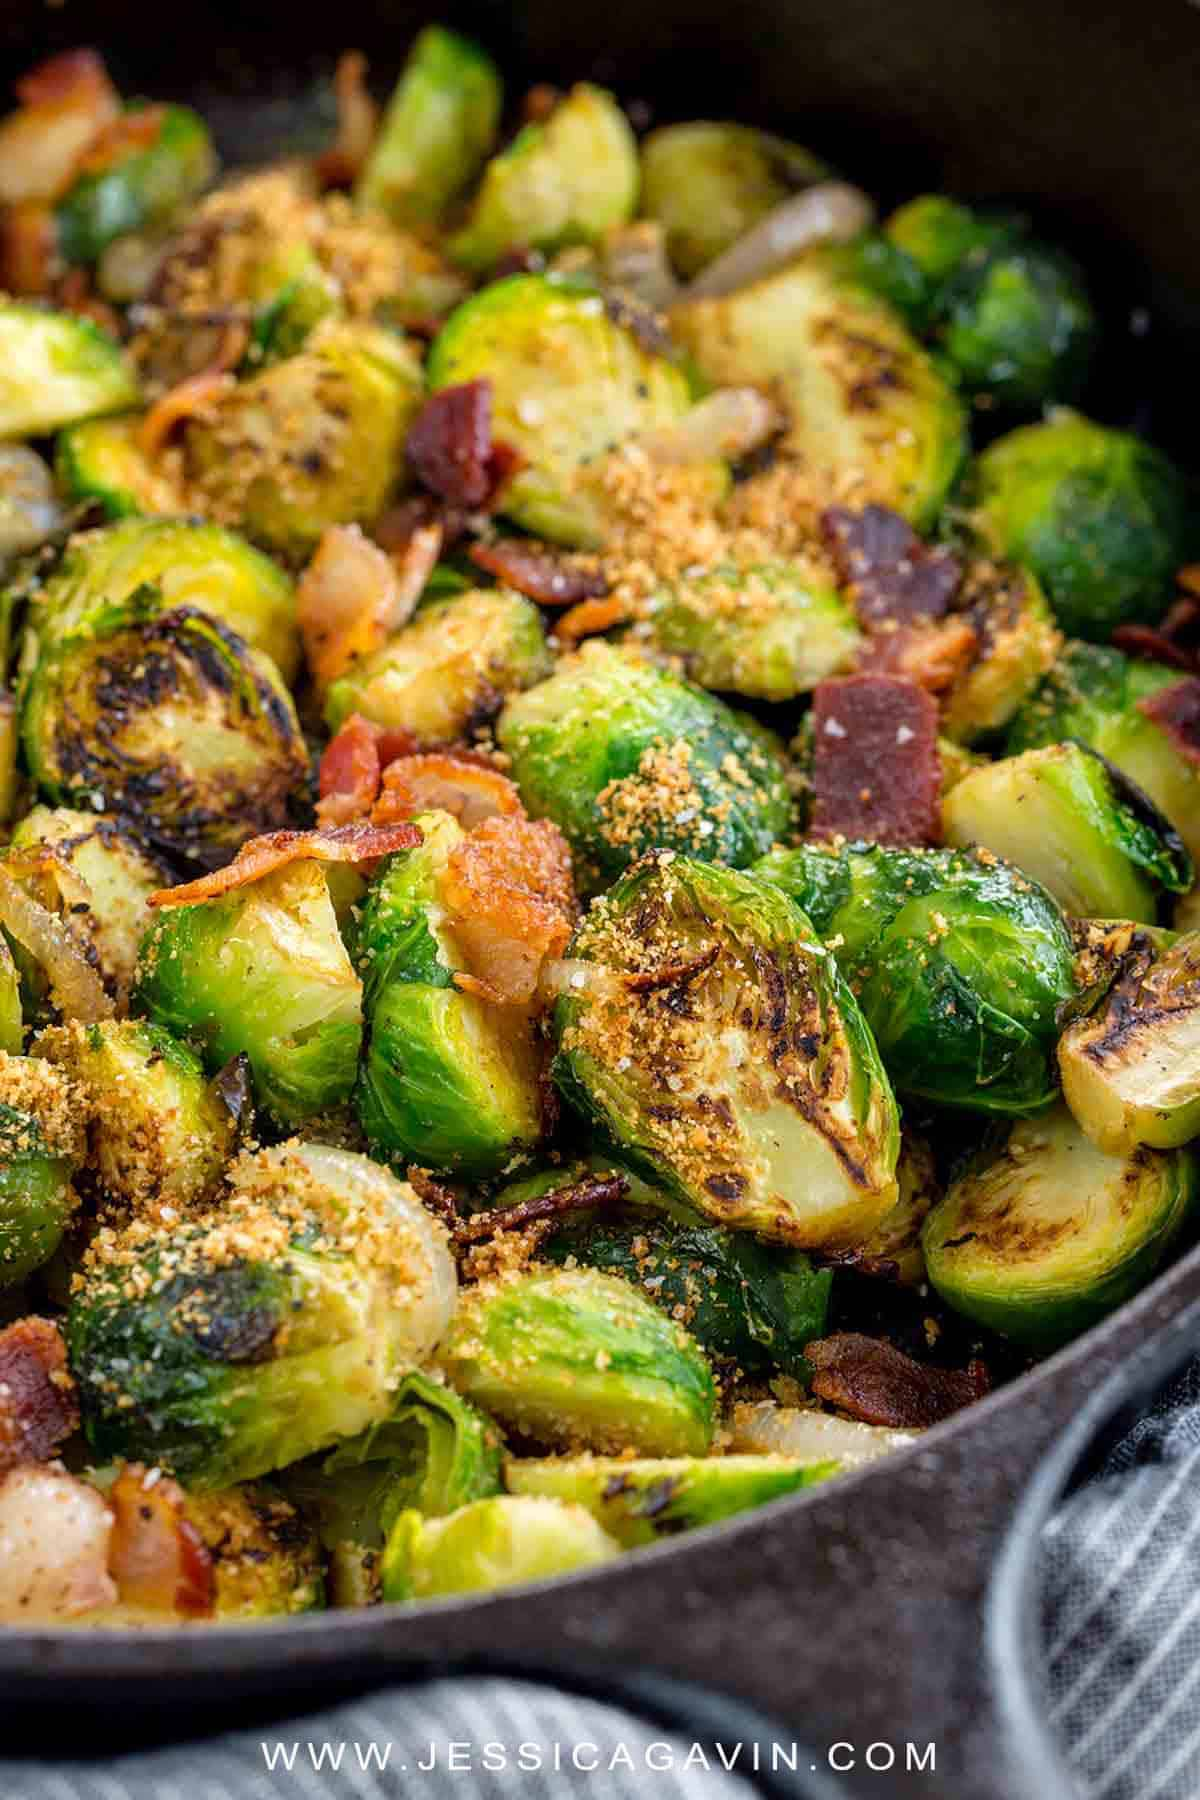 Sautéed Brussels sprouts with bacon will be your new favorite side dish! These green sprouts are topped with crunchy breadcrumbs and served with savory hickory smoked bacon. #brusselssprouts #sidedish #thanksgiving